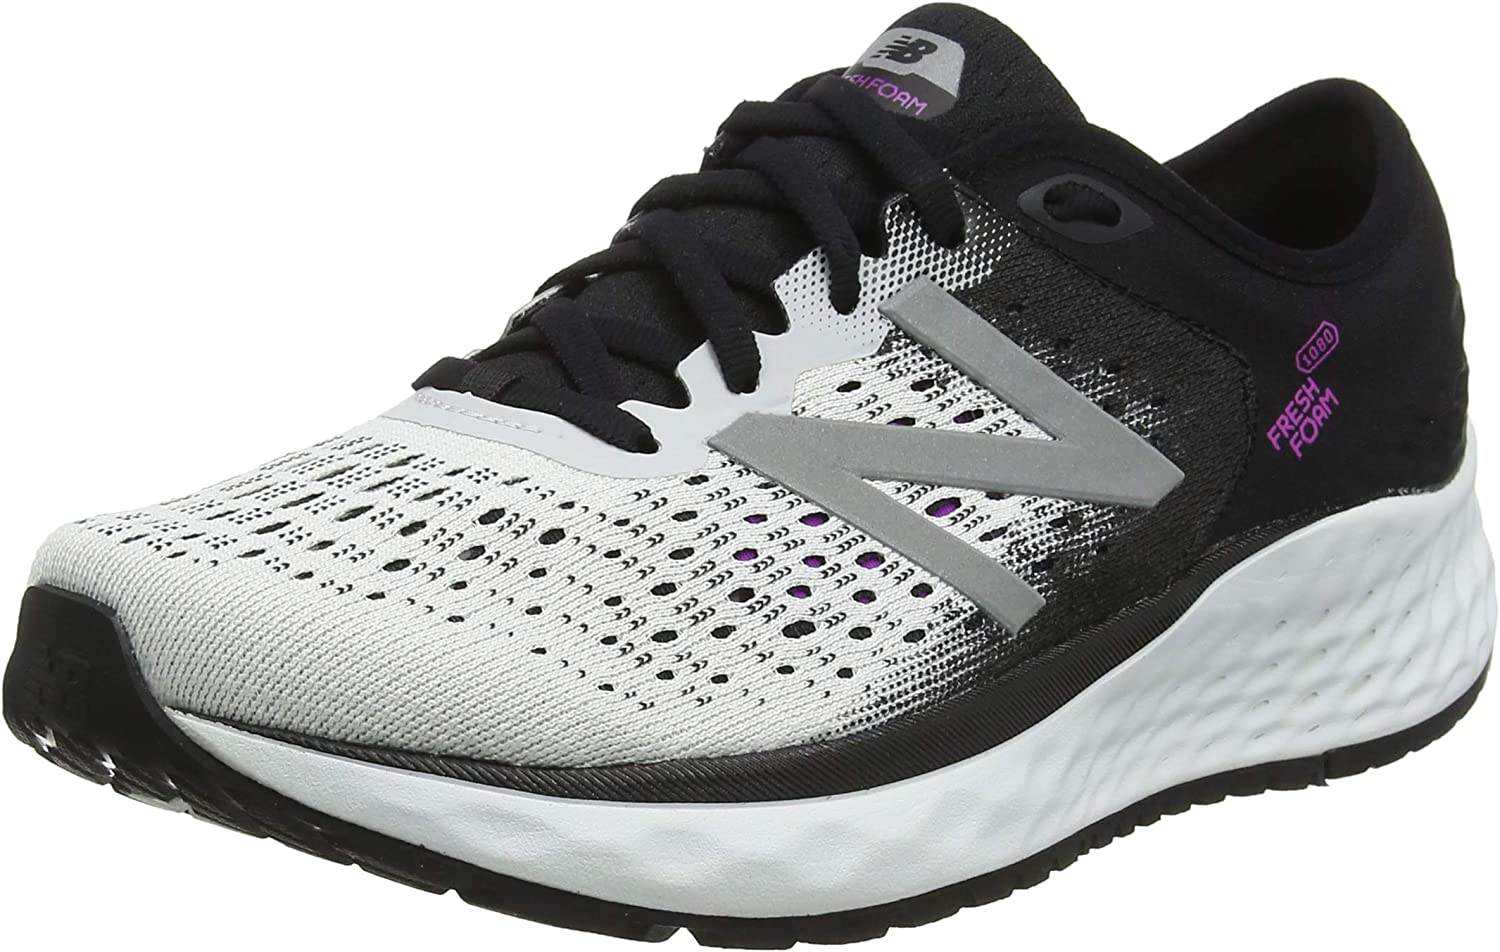 Reducción de precios America Roble  Amazon.com | New Balance Women's 1080v9 Fresh Foam Running Shoe | Road  Running